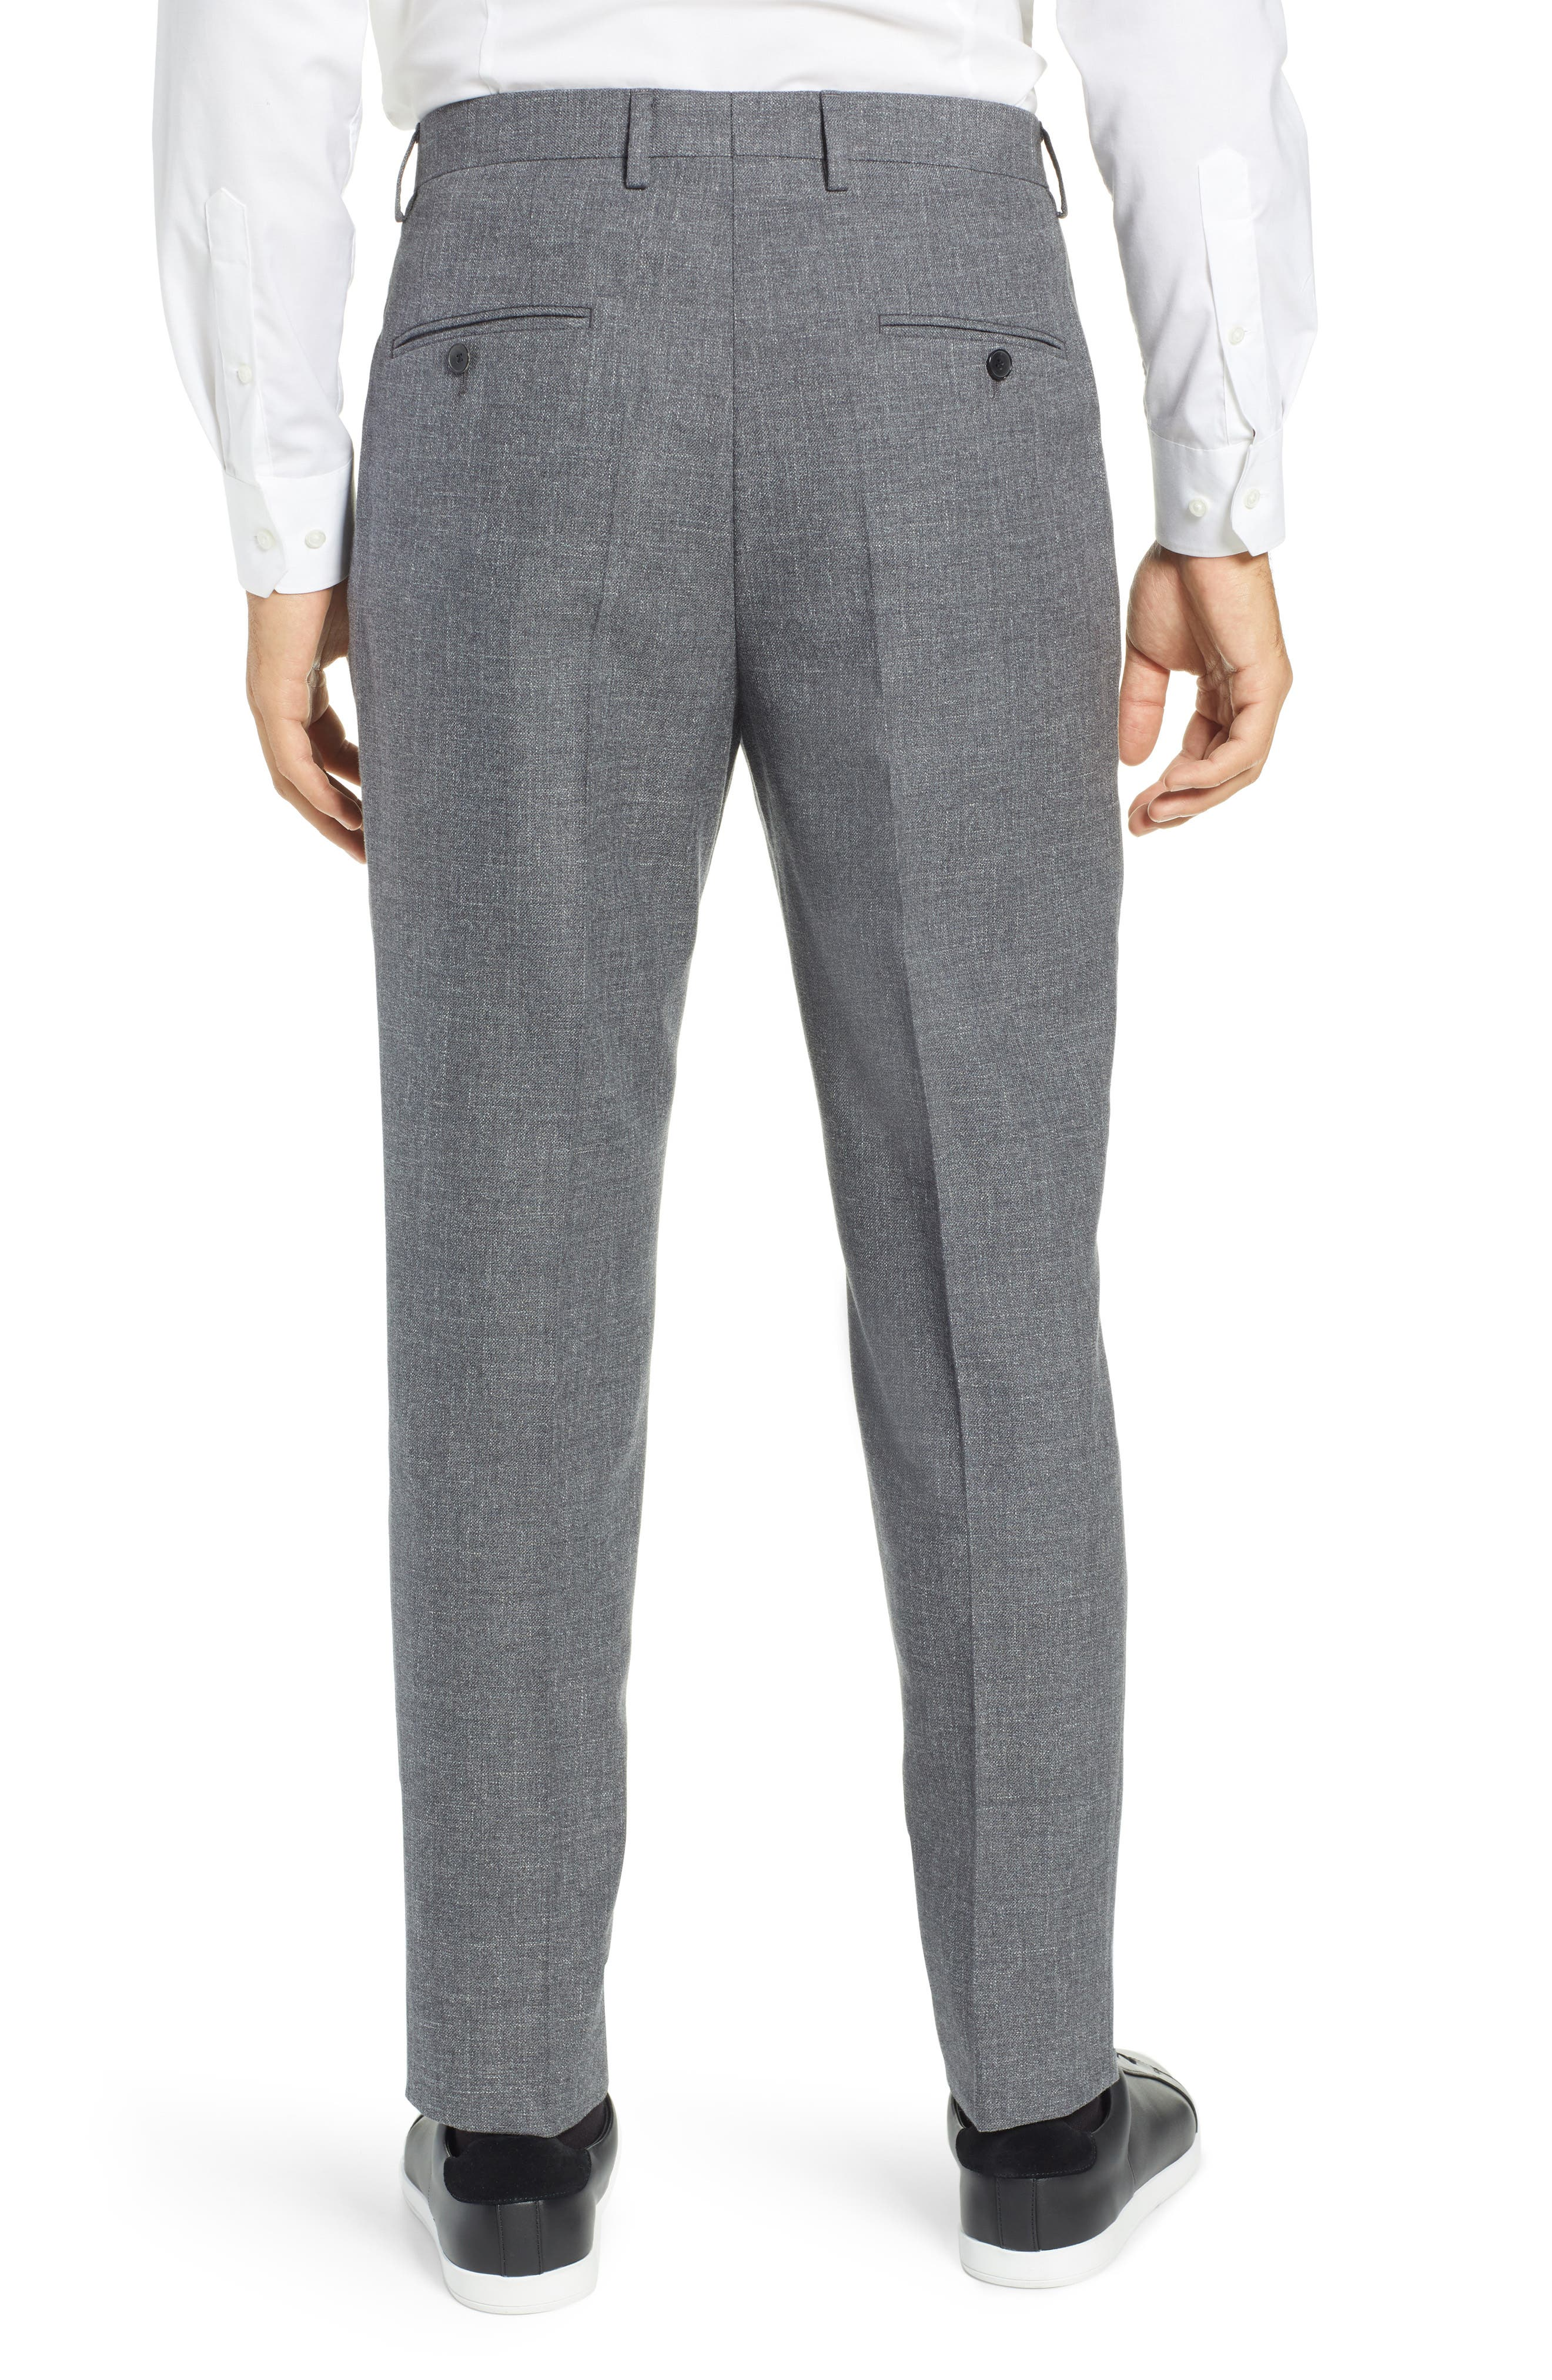 Ole Pleated Solid Wool & Cotton Trousers,                             Alternate thumbnail 2, color,                             MEDIUM GREY